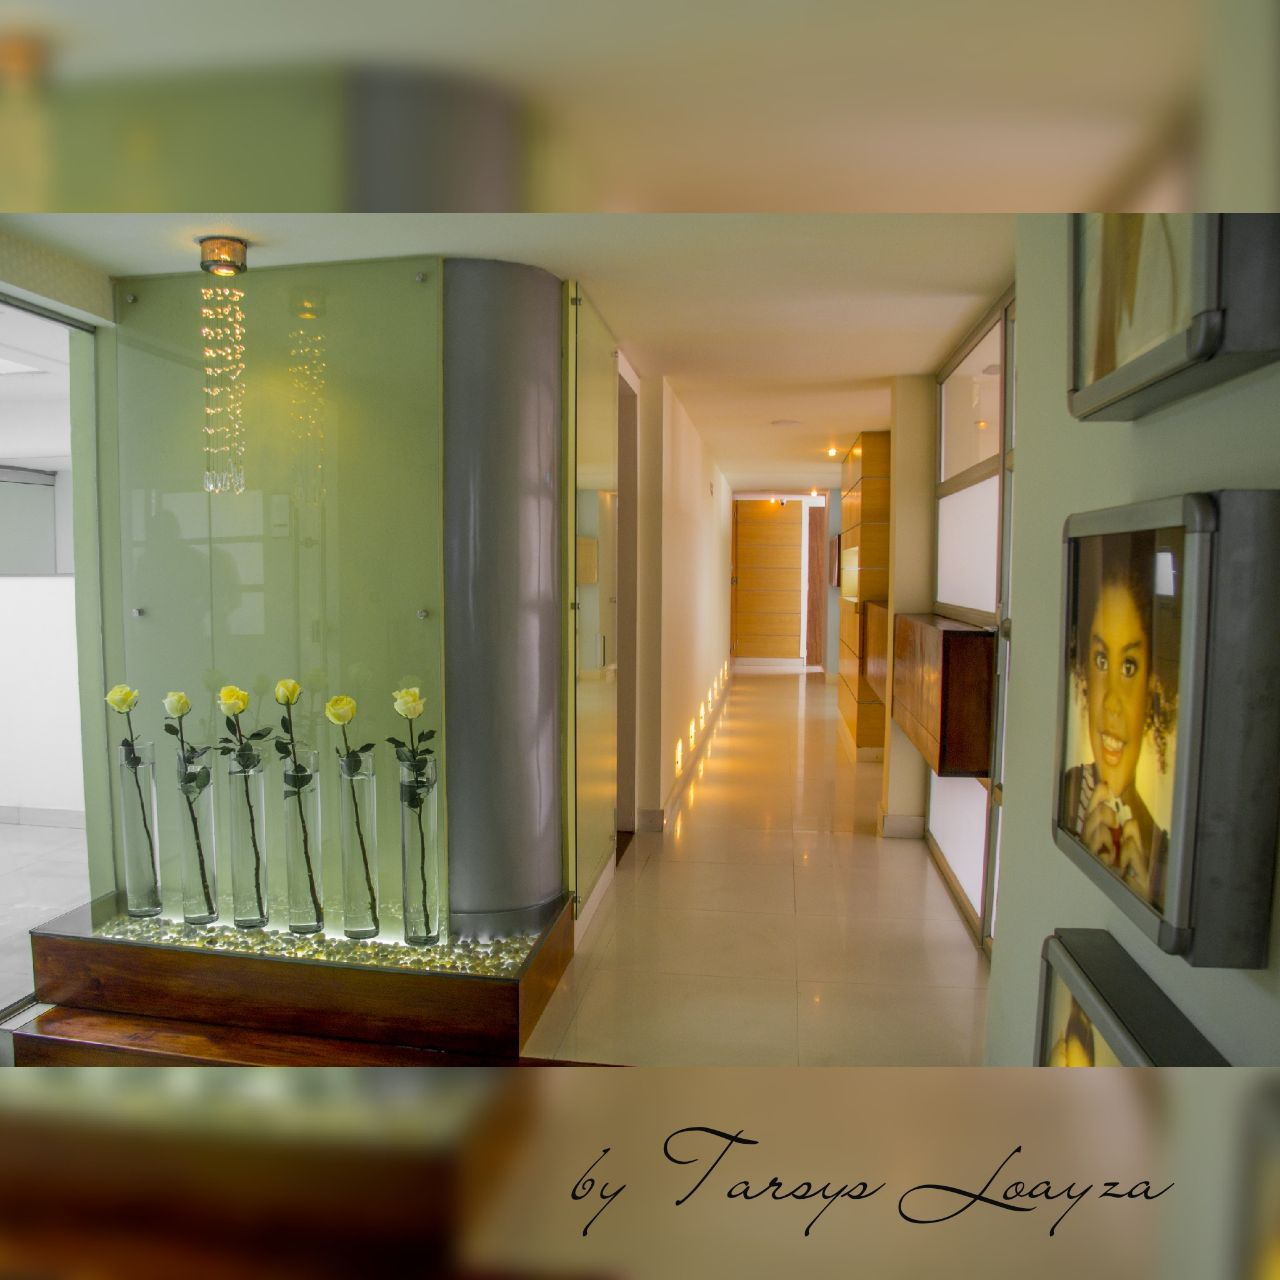 Sonrisa Perfecta Dental - Tarsys Loayza Roys Facility